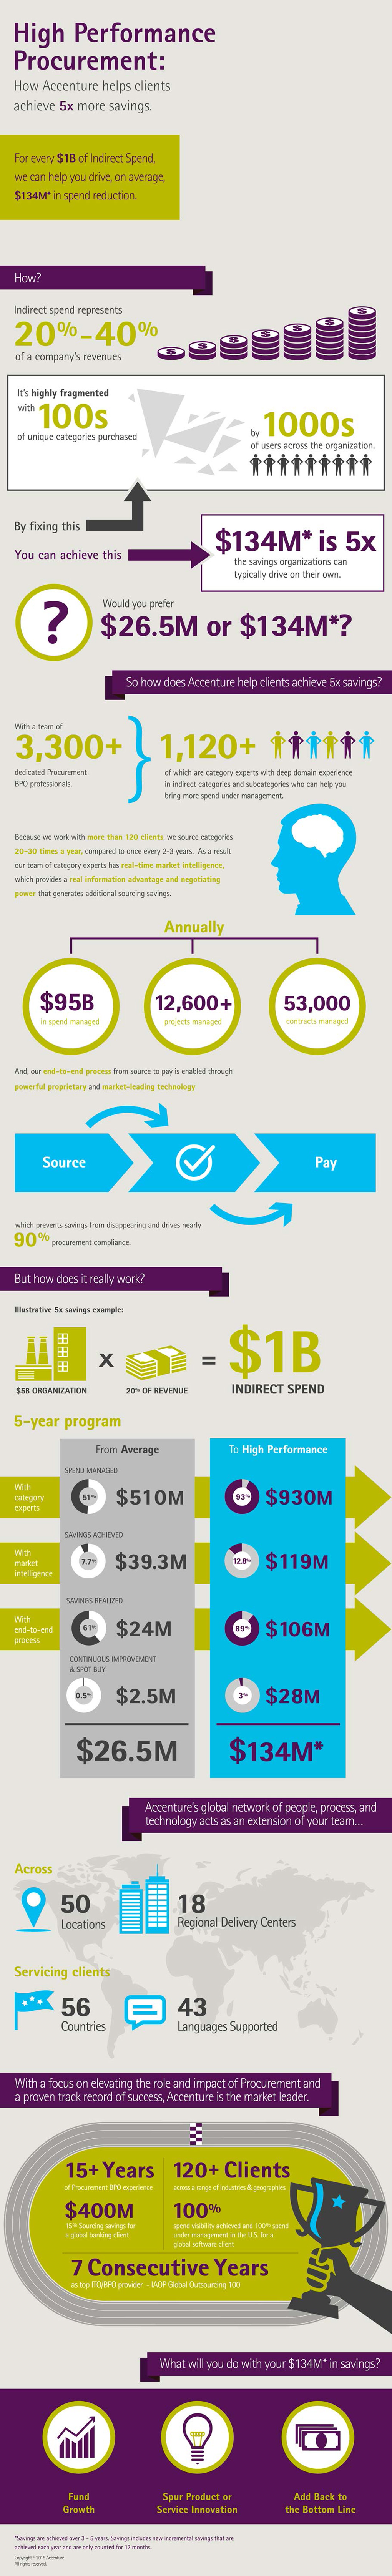 High Performance Procurement—Infographic